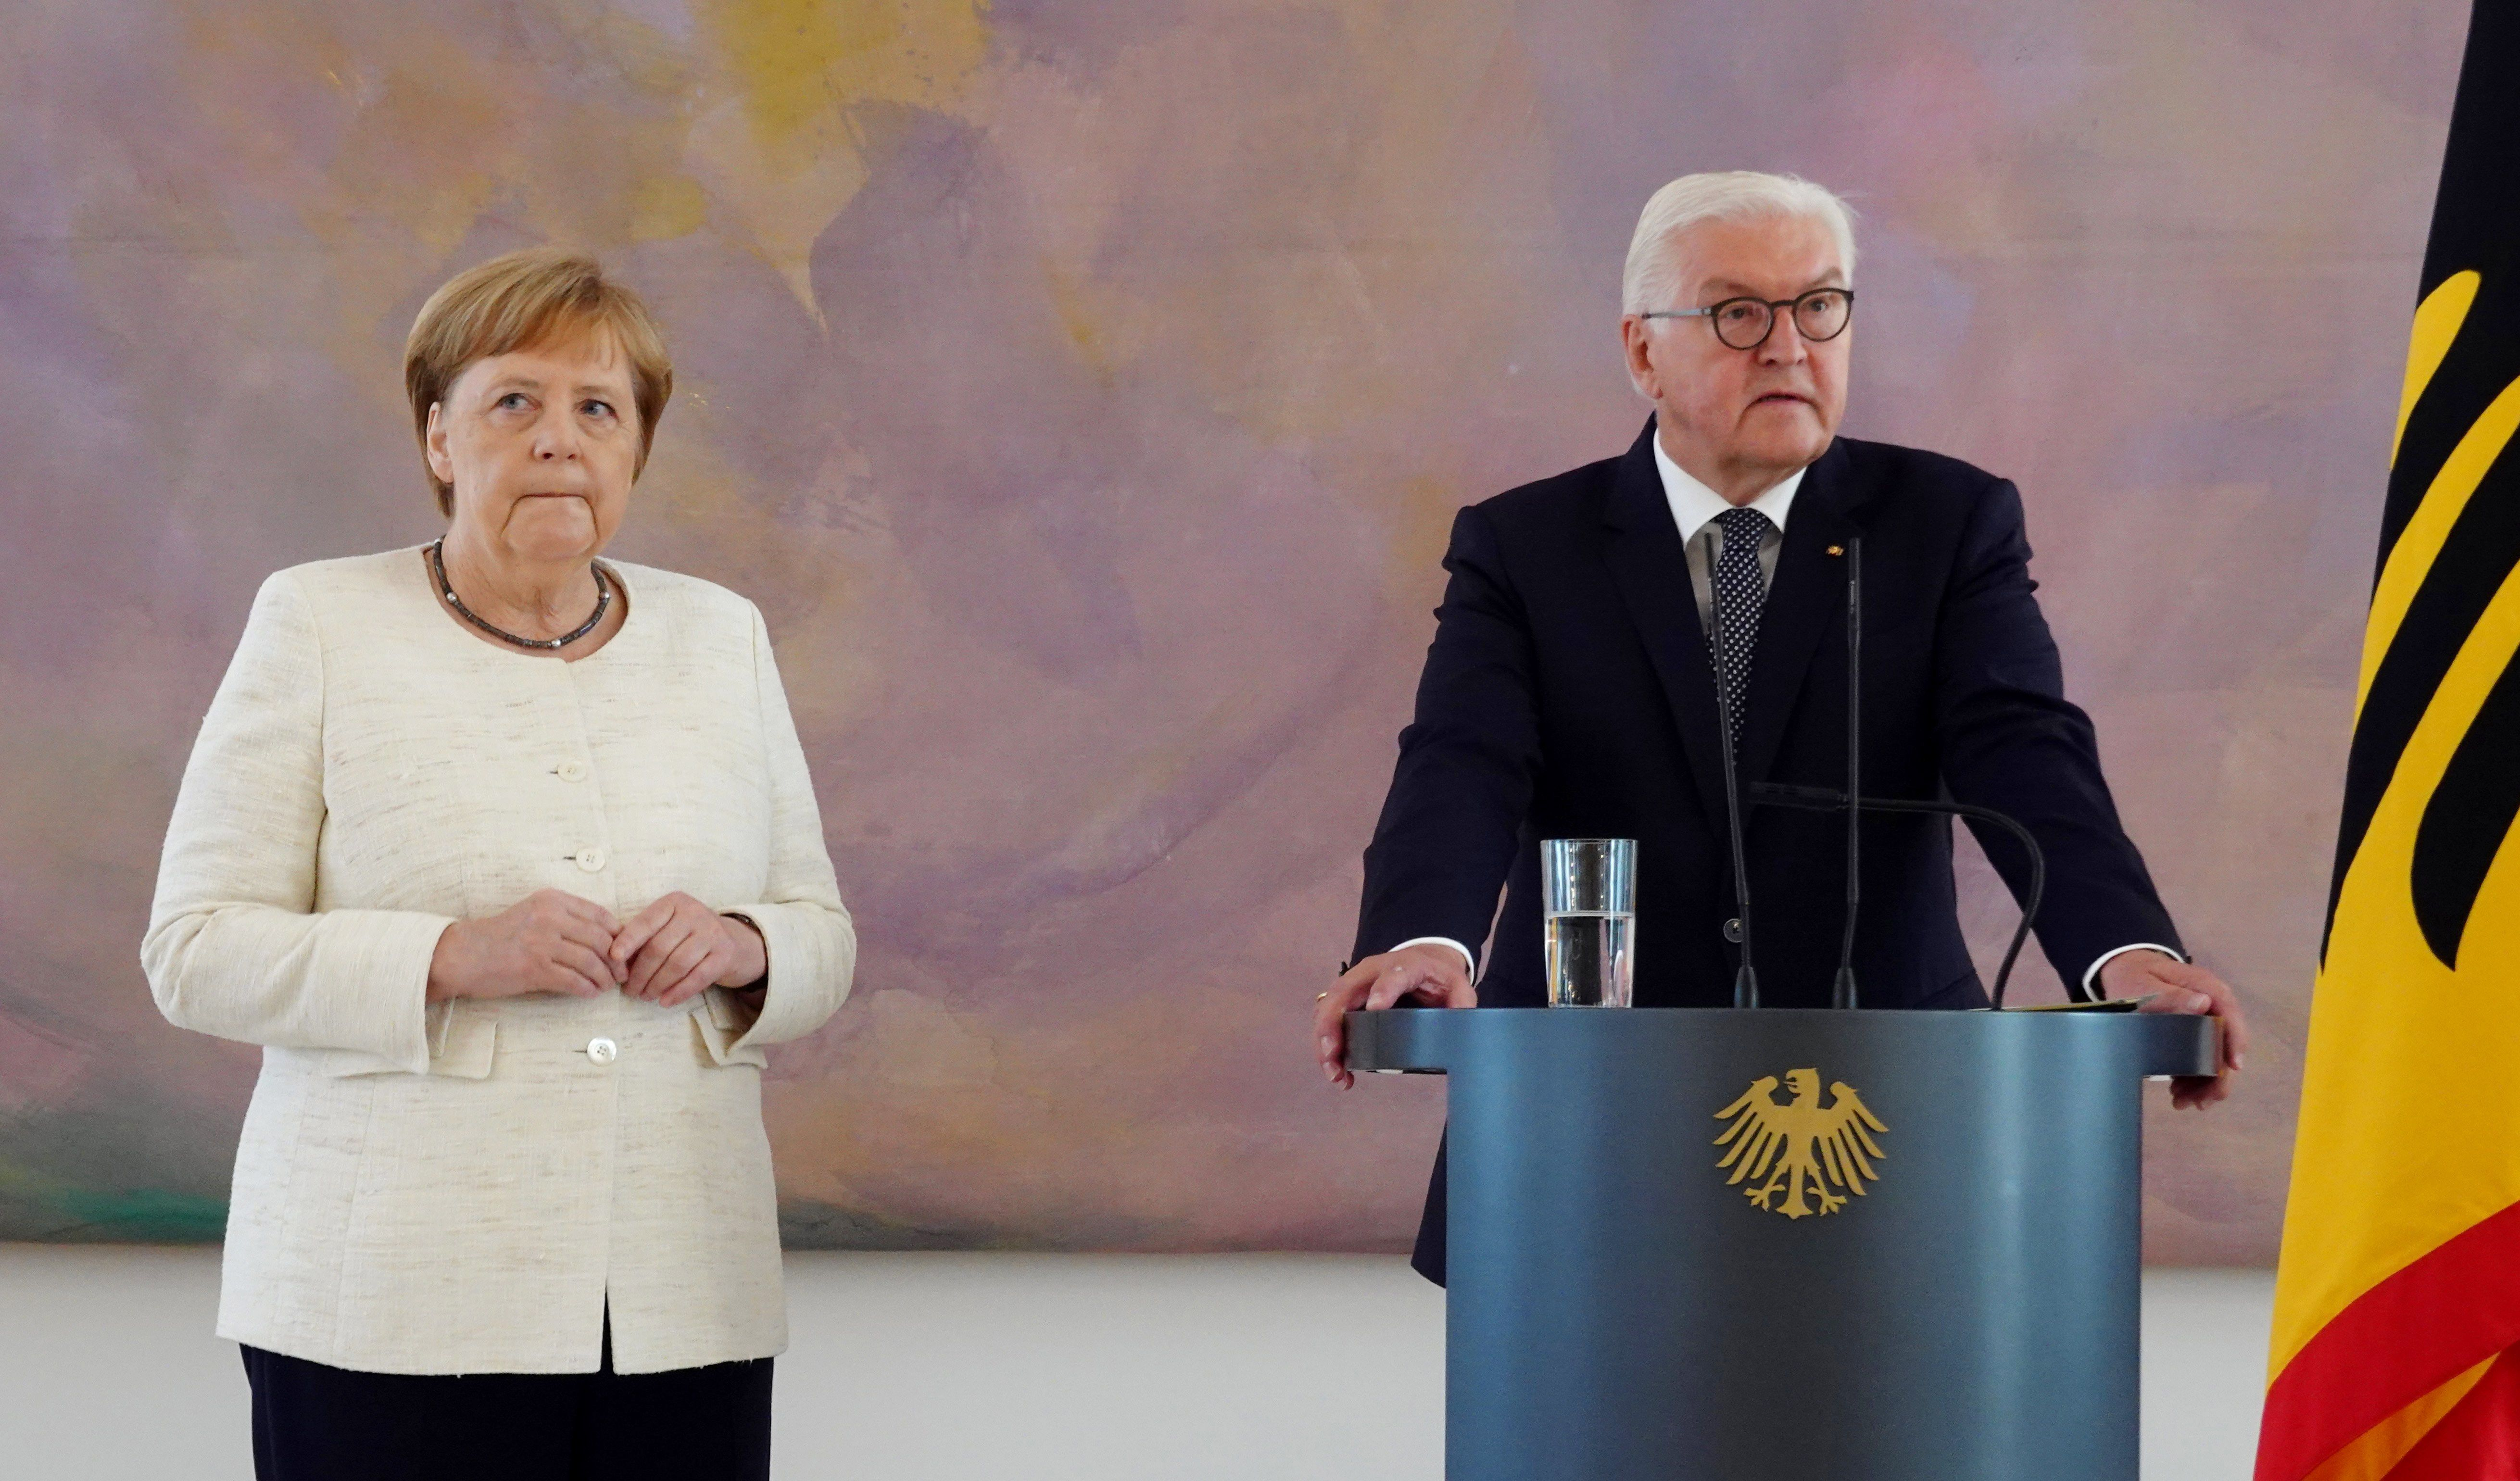 German Chancellor Angela Merkel attends a ceremony where the country's new Justice Minister was given her certificate of appointment by German President Frank-Walter Steinmeier at the presidential Bellevue Palace in Berlin on June 27, 2019. (KAY NIETFELD/AFP/Getty Images)